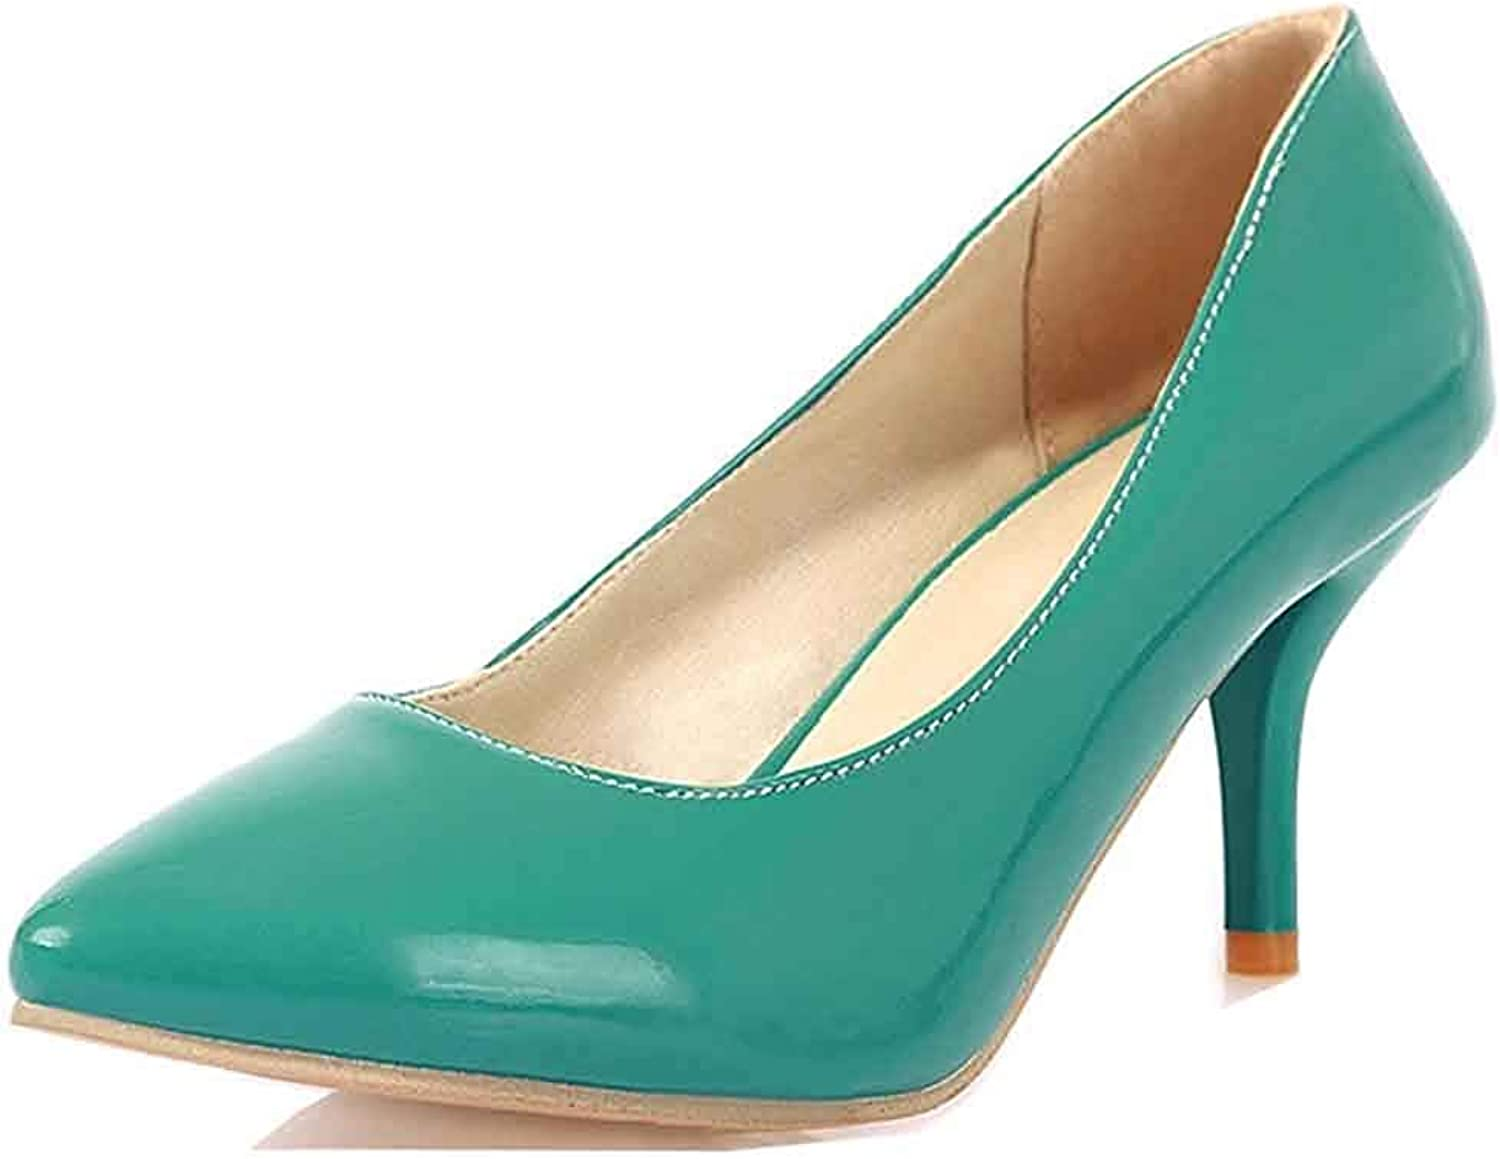 Unm Women's Sexy Burnished Dressy Slip On Low Cut Pointed Toe Stiletto High Heel Pumps shoes